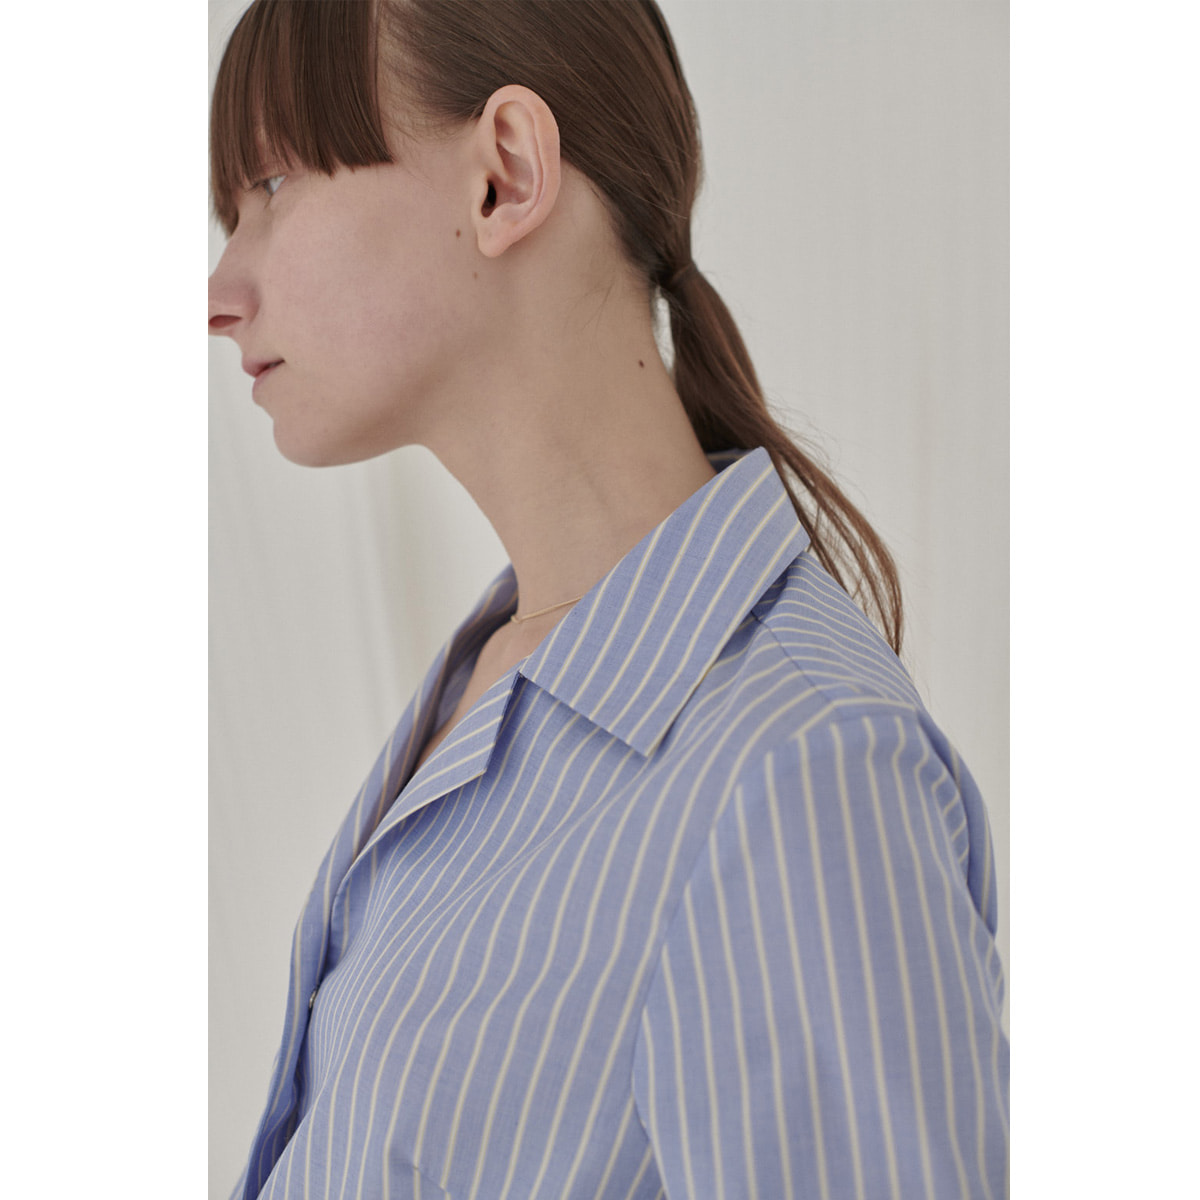 SERO STRIPE SHIRT | blue stripe | 4.10 발송예정